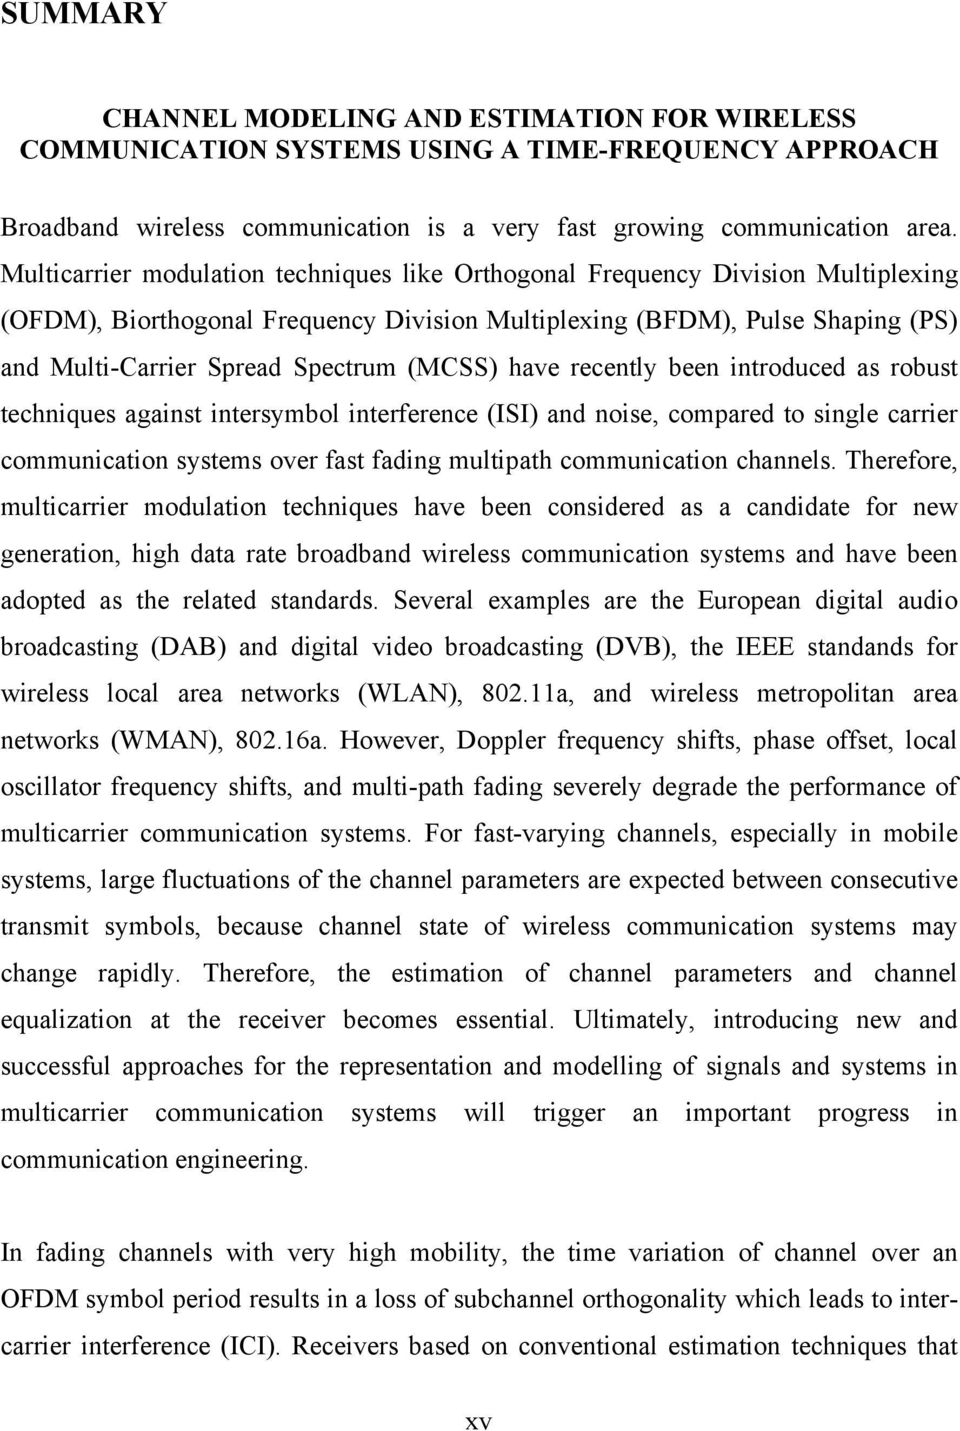 (MCSS) have recently been introduced as robust techniques against intersymbol interference (ISI) and noise, compared to single carrier communication systems over fast fading multipath communication